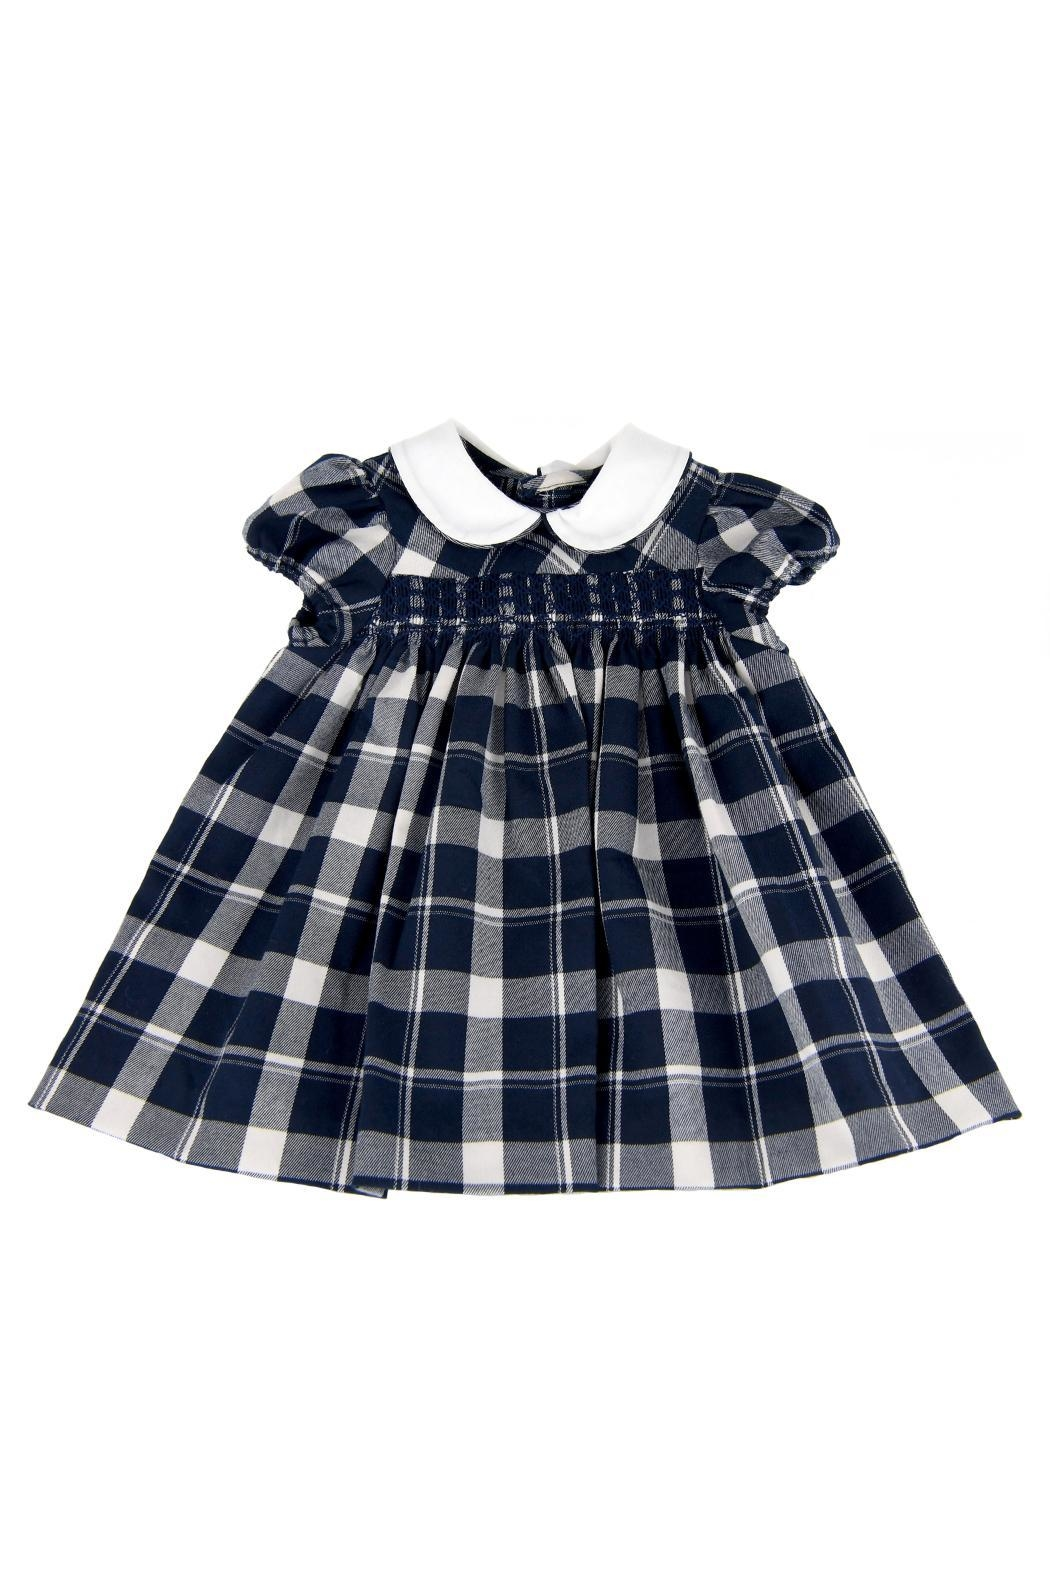 Malvi & Co. Check Smocked Dress. - Main Image